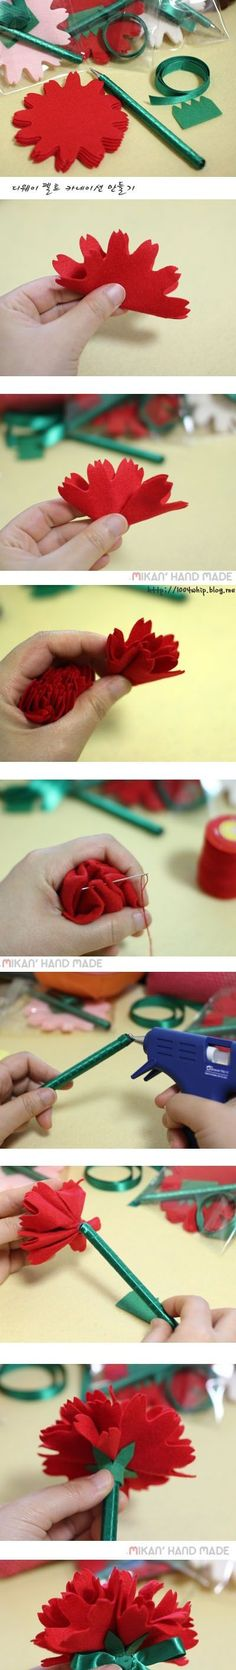 DIY Modular Carnation Flower